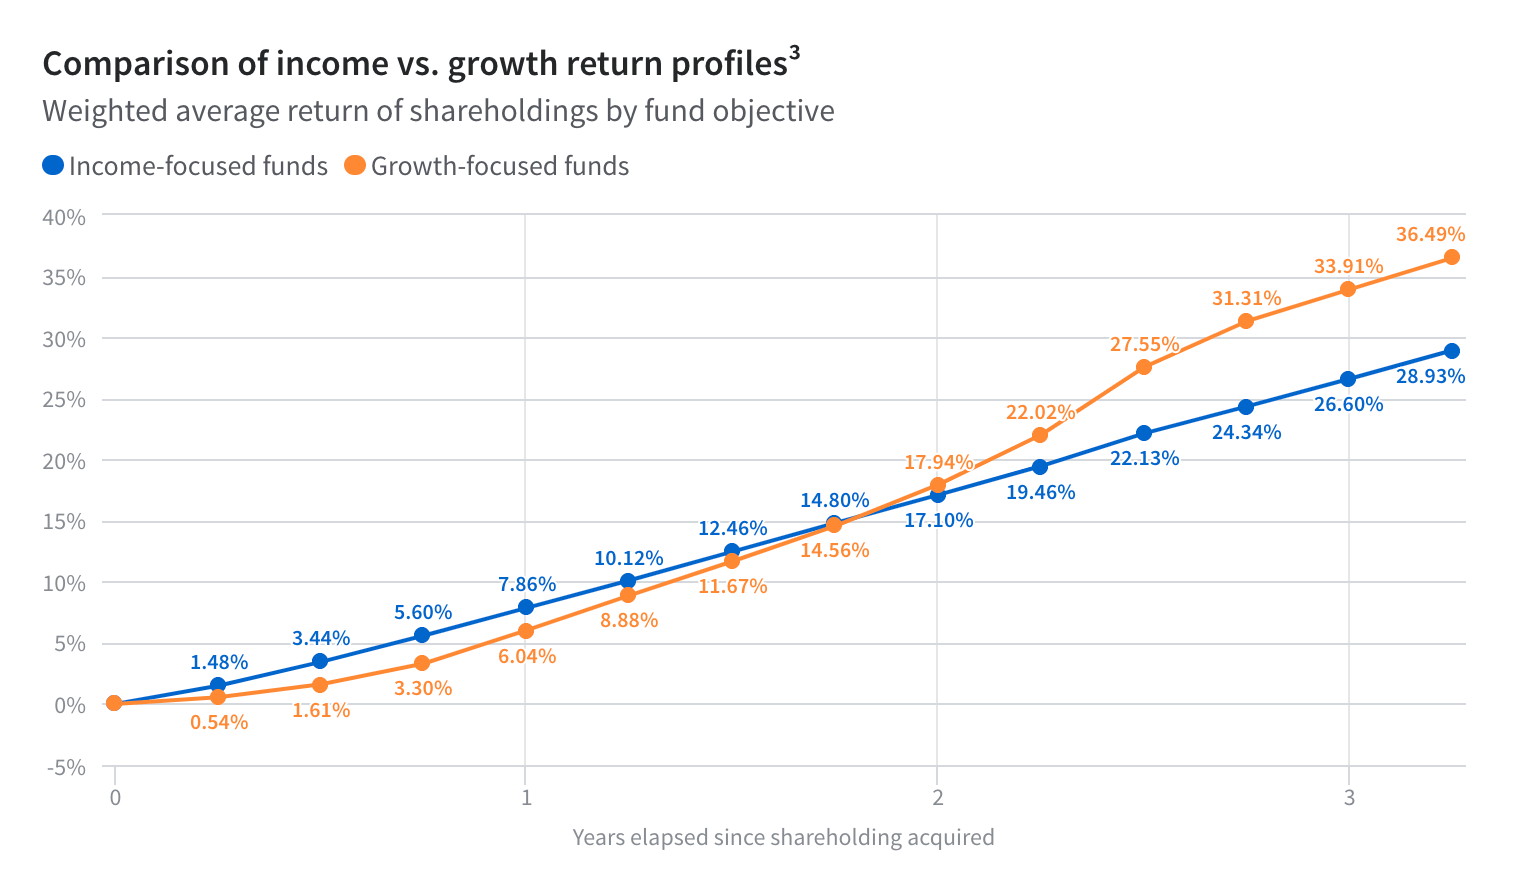 Comparison of income vs. growth return profiles